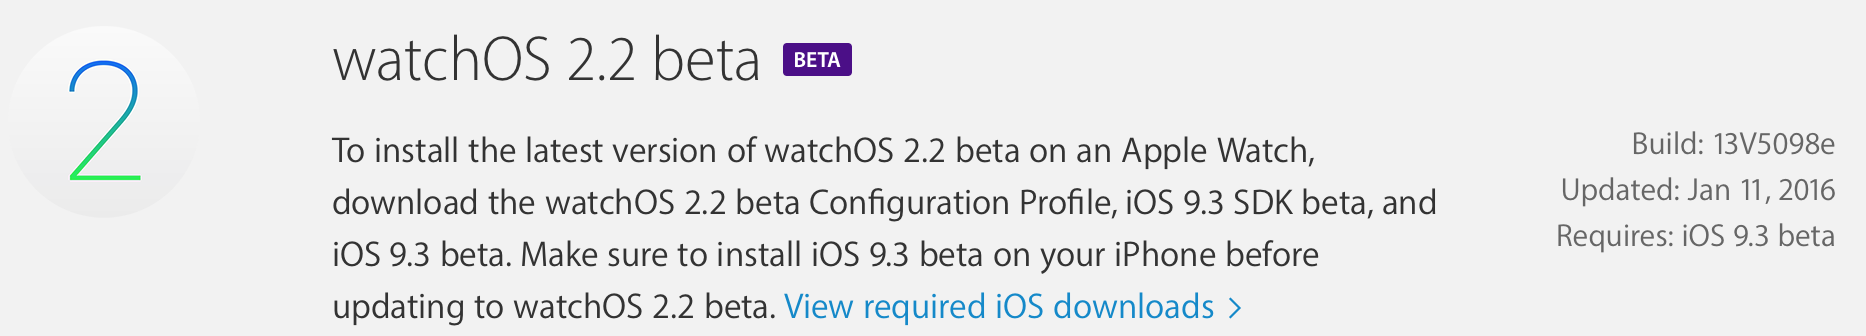 watchOS-Beta-Versionen-bildschirmfoto-2016-01-11-um-19.52.05.png